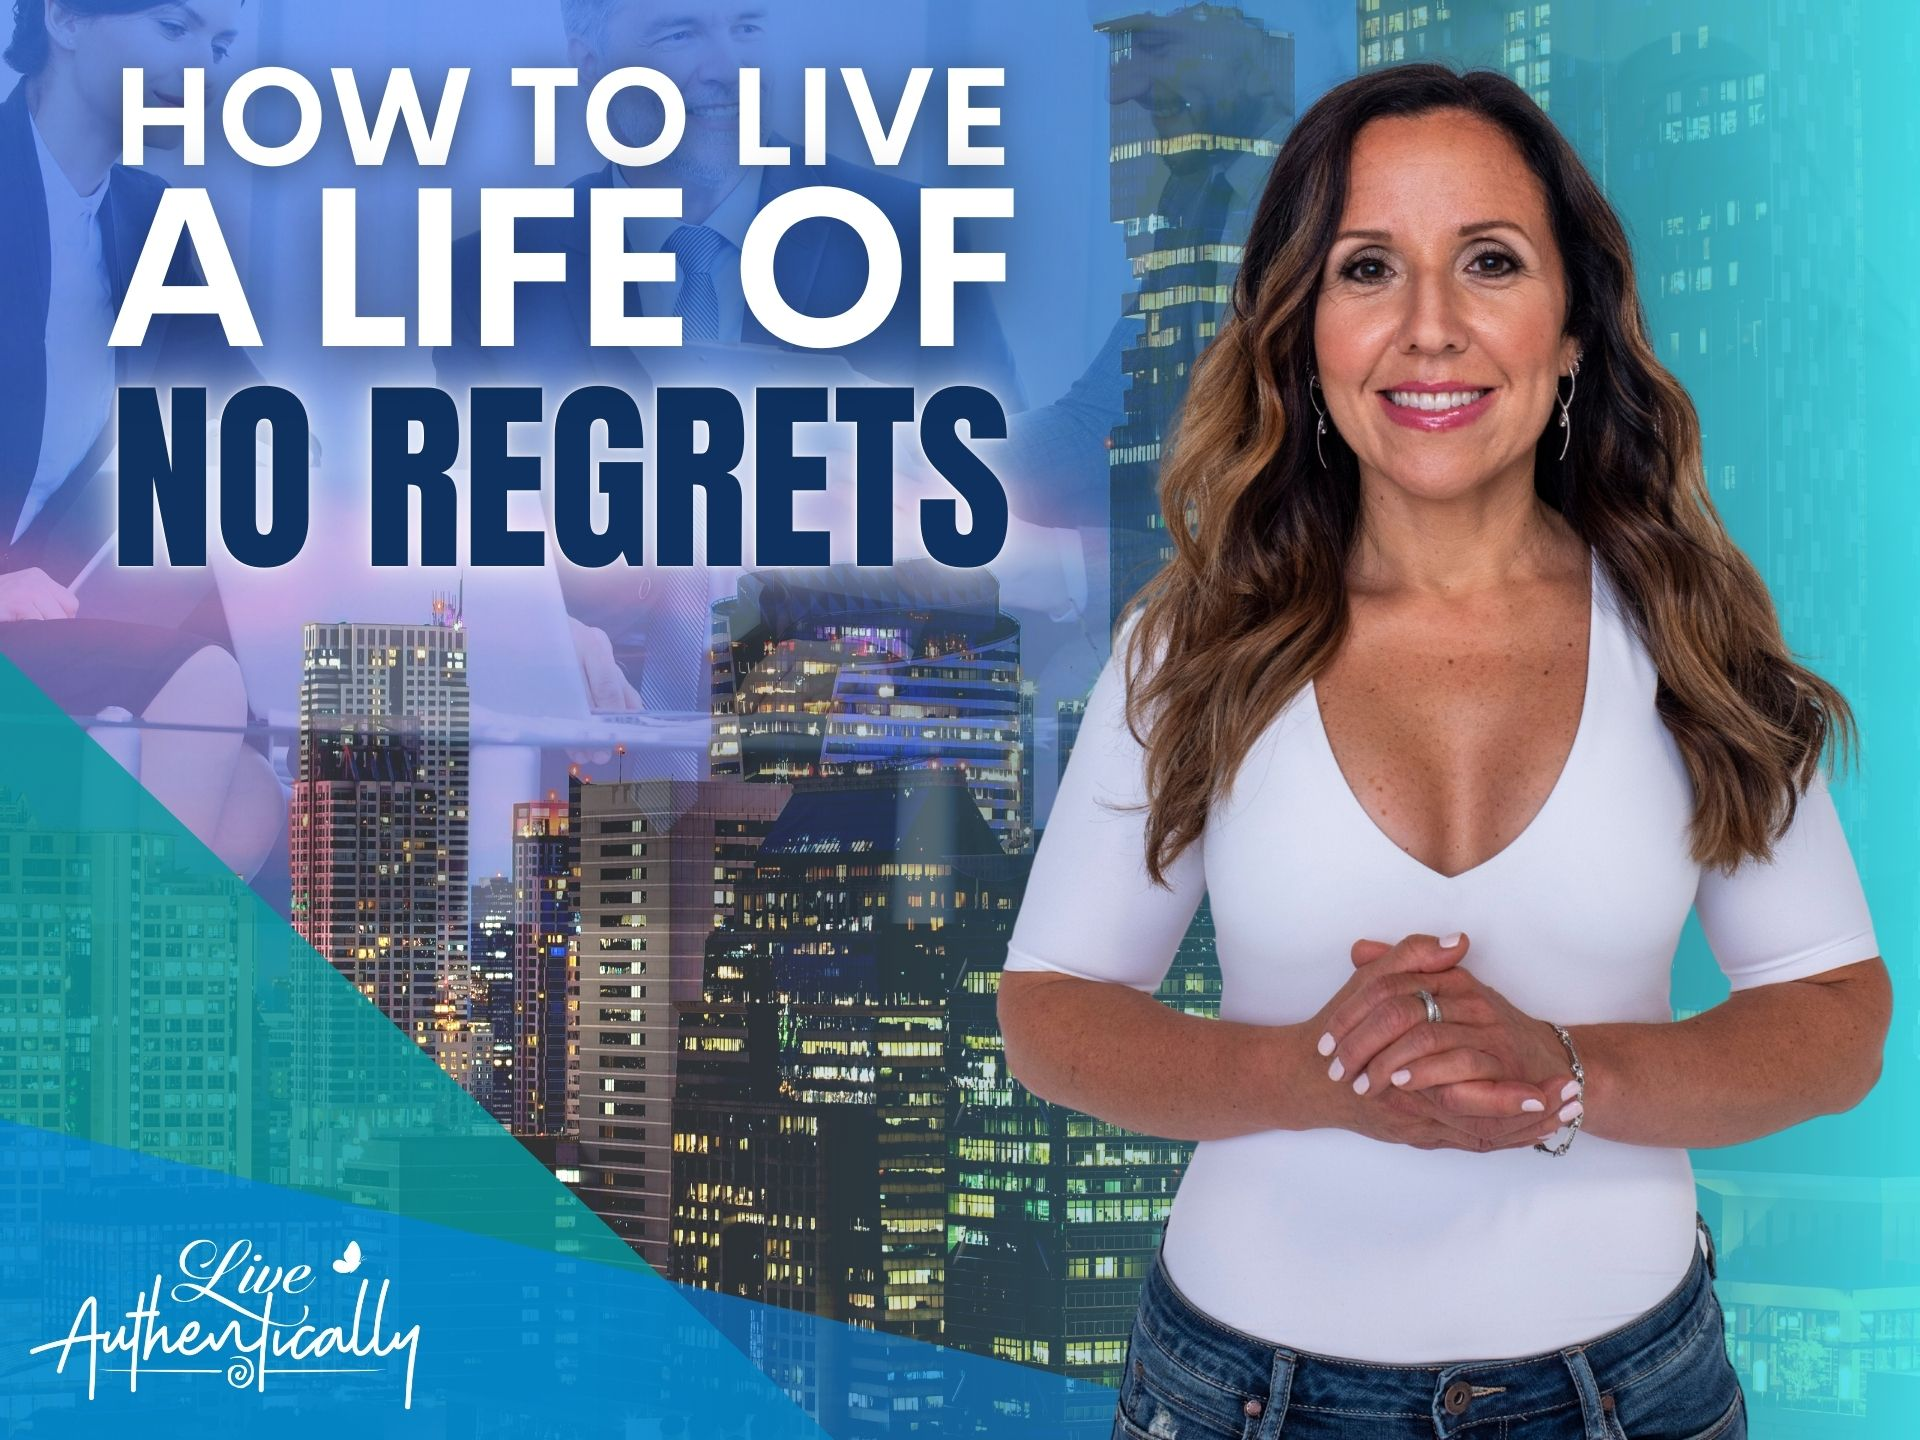 How to Live a Life of No Regrets